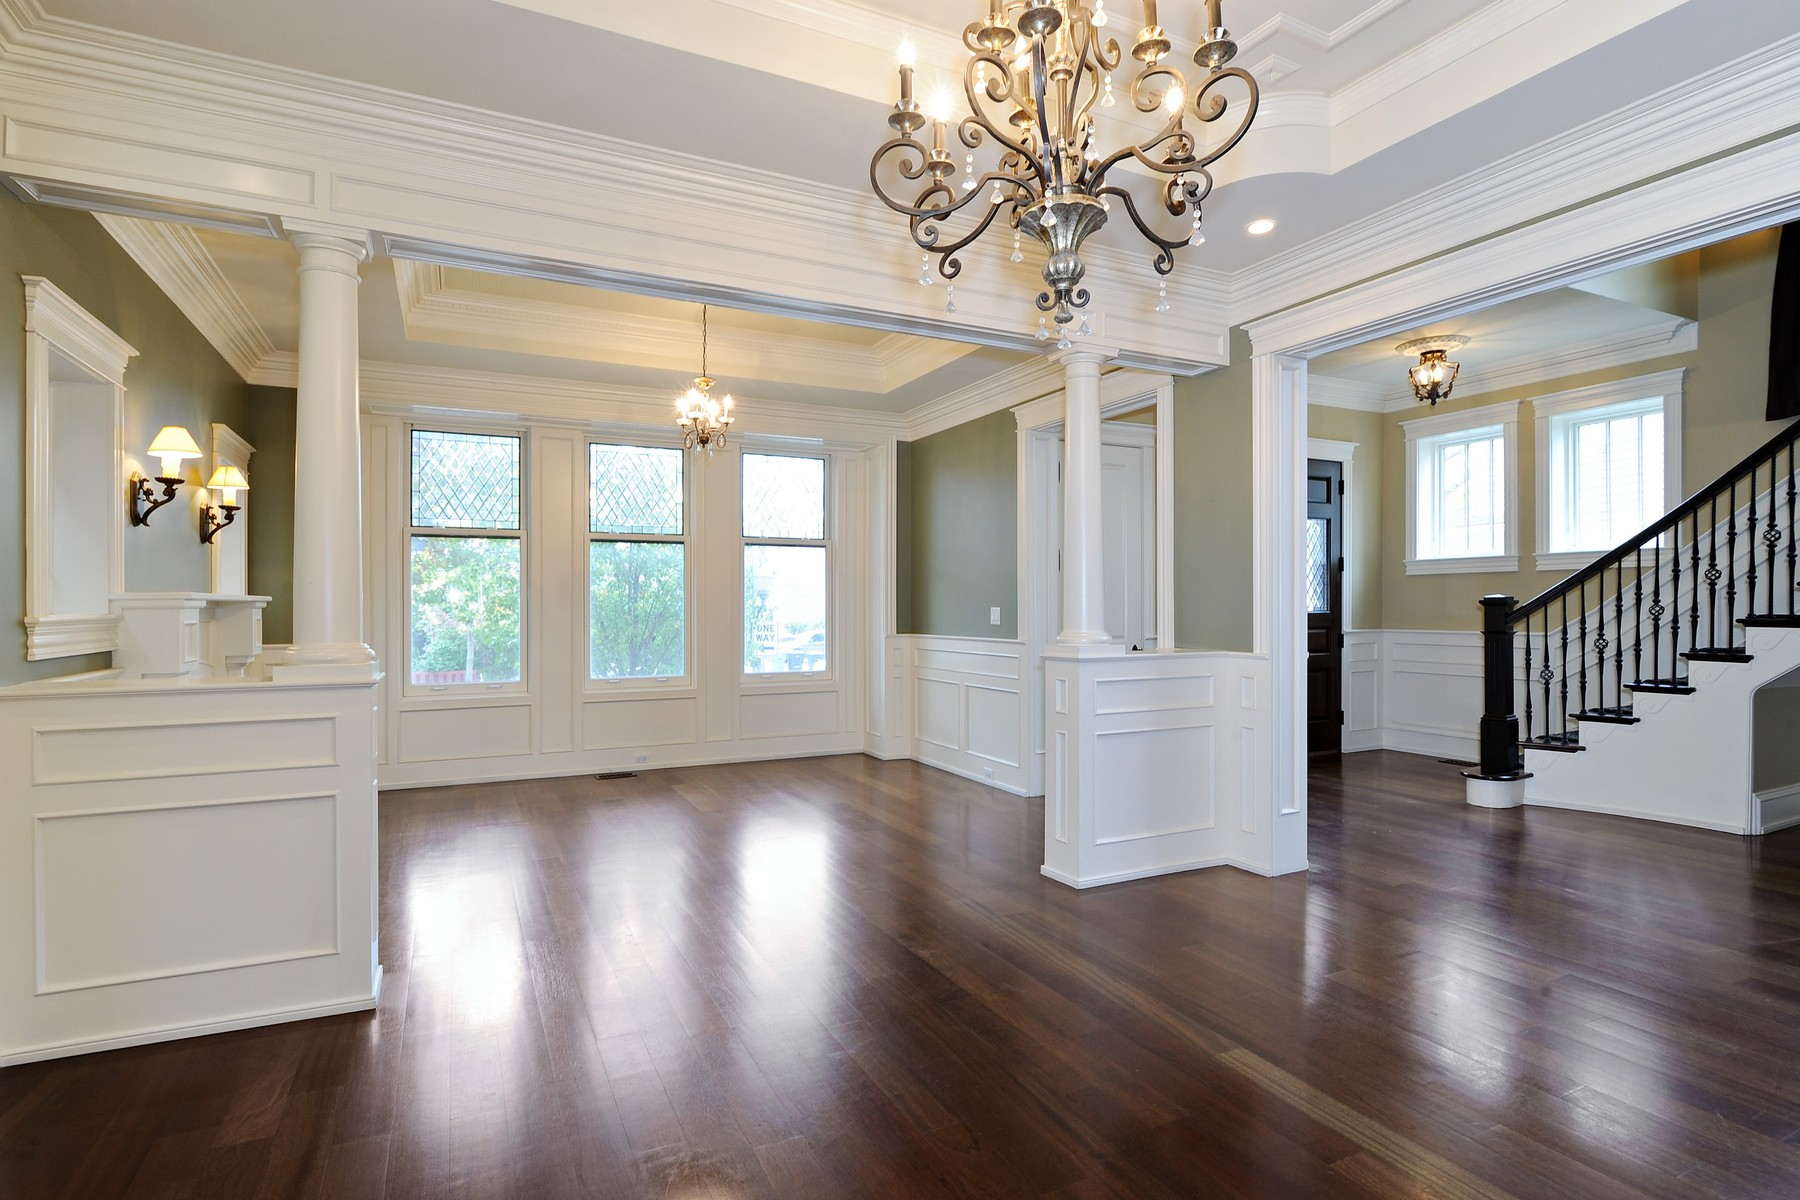 Single Family Home for Sale at Spectacular Southport Corridor Home Lakeview, Chicago, Illinois 60613 United States